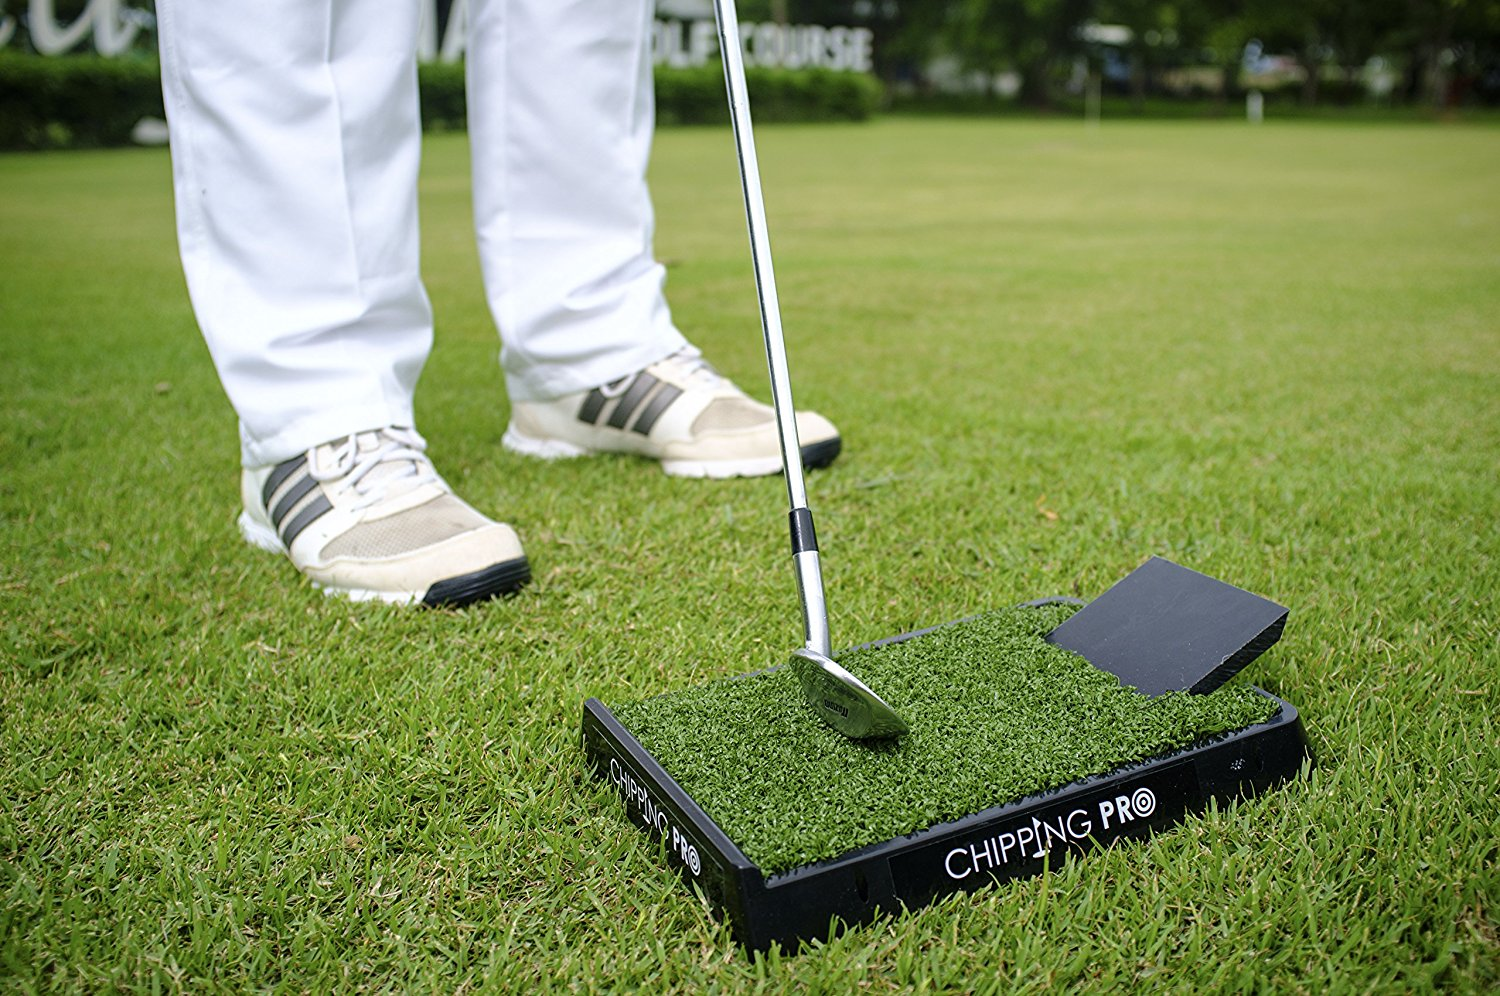 durapro lie cce golf hitting mat gallery uneven mats lessons real perfect images the